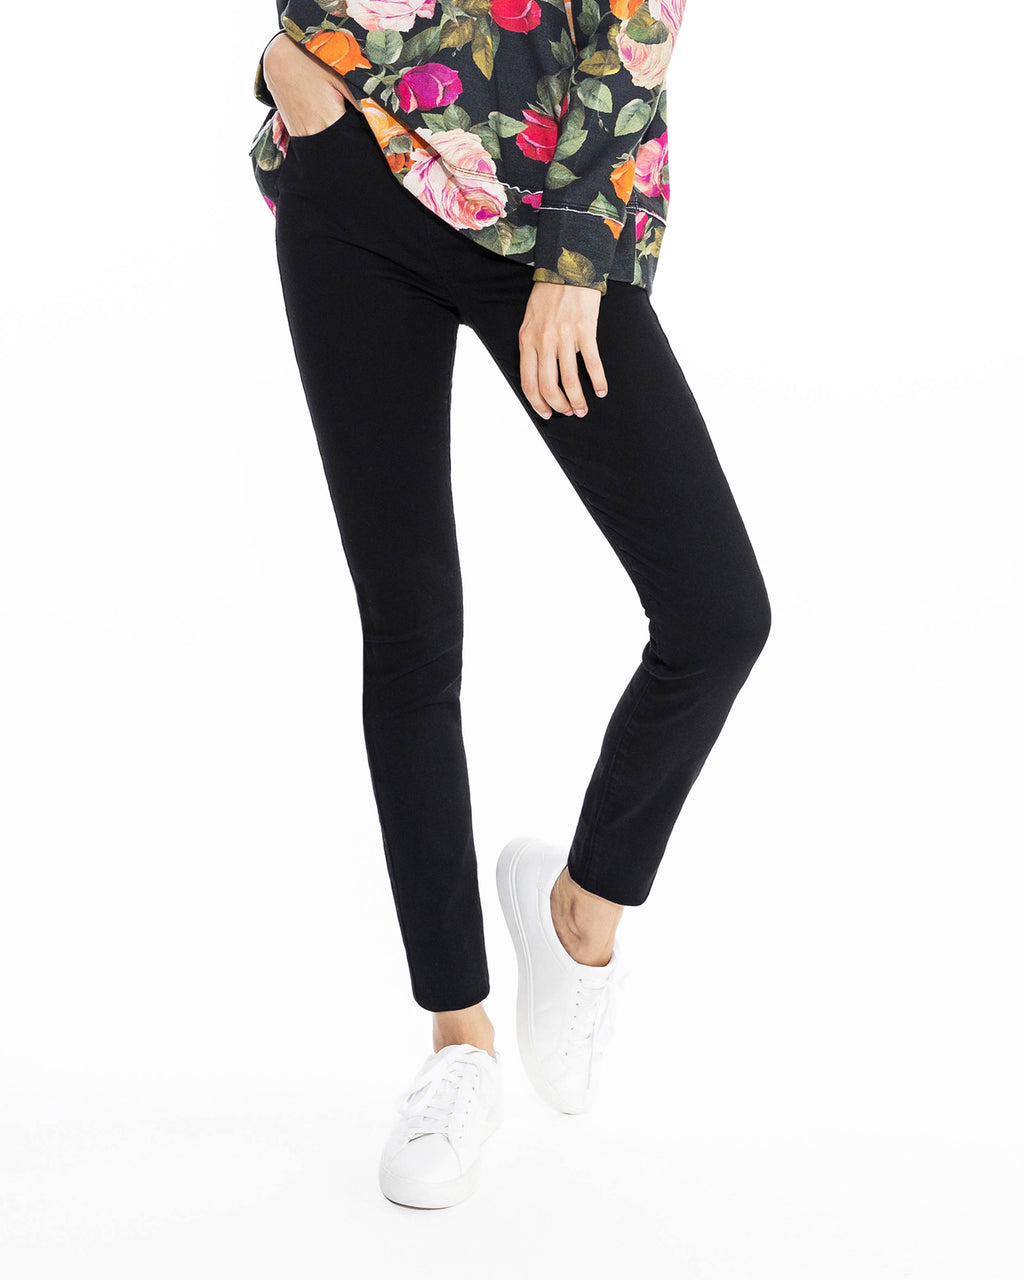 CP18513 - BLACK SOHO JEAN - bottoms - pants - Our best selling soho skinny jean is back in dark black denim. This classic skinny silhouette matches perfectly with everything from cashmere sweaters to our best date night tops. Add 1 line break Stylist tip: Pair with one of our silky tops for a perfect night out ensemble.